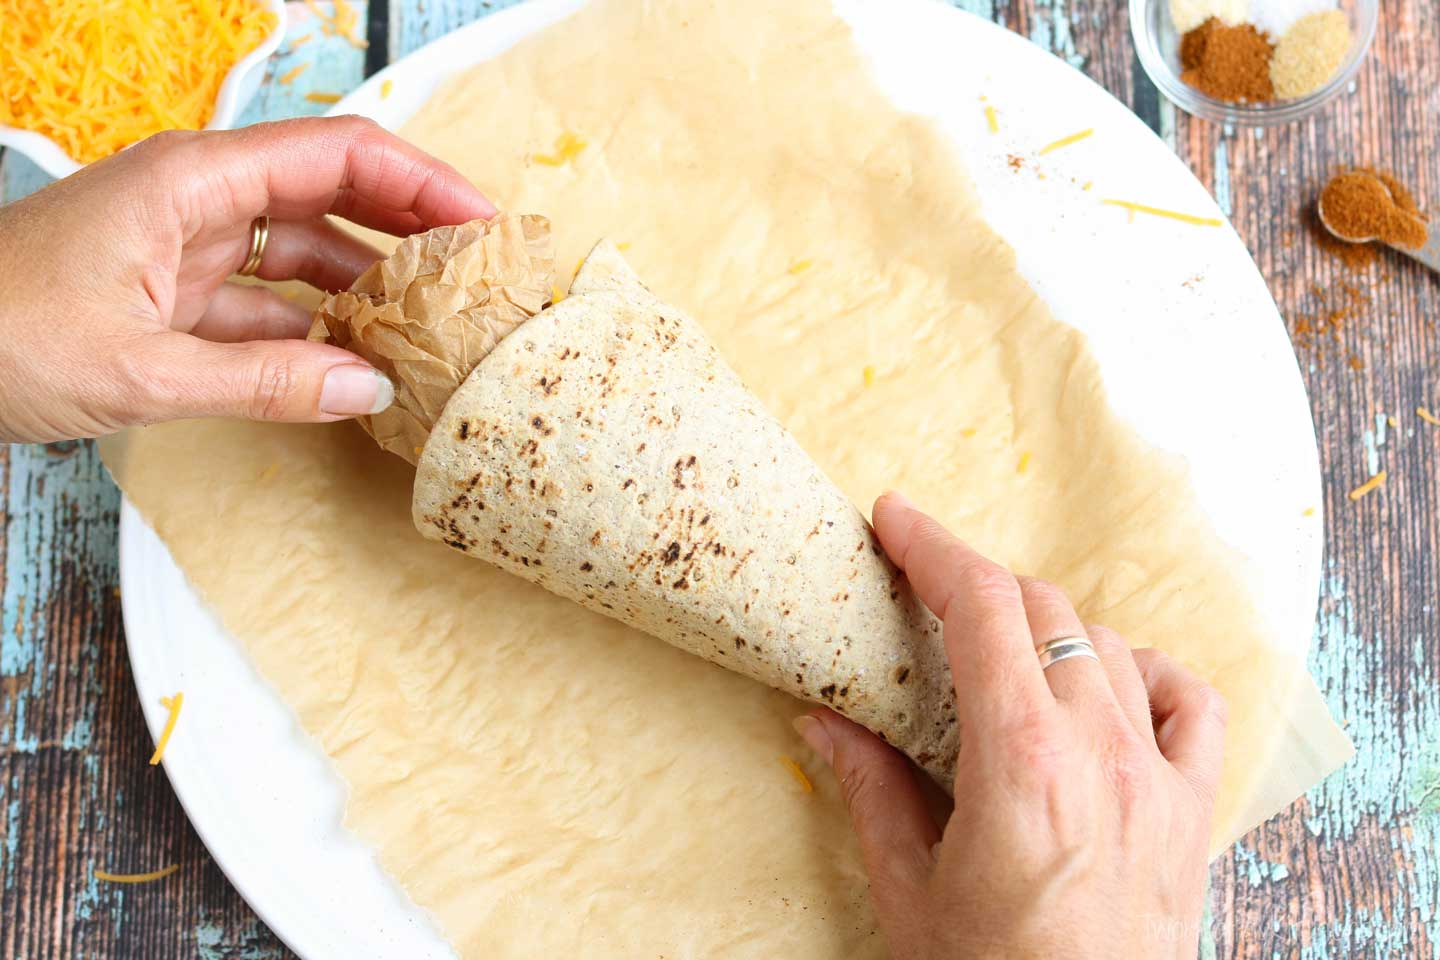 Stuffing balled-up parchment paper into the open end of the cone will help it keep its shape.